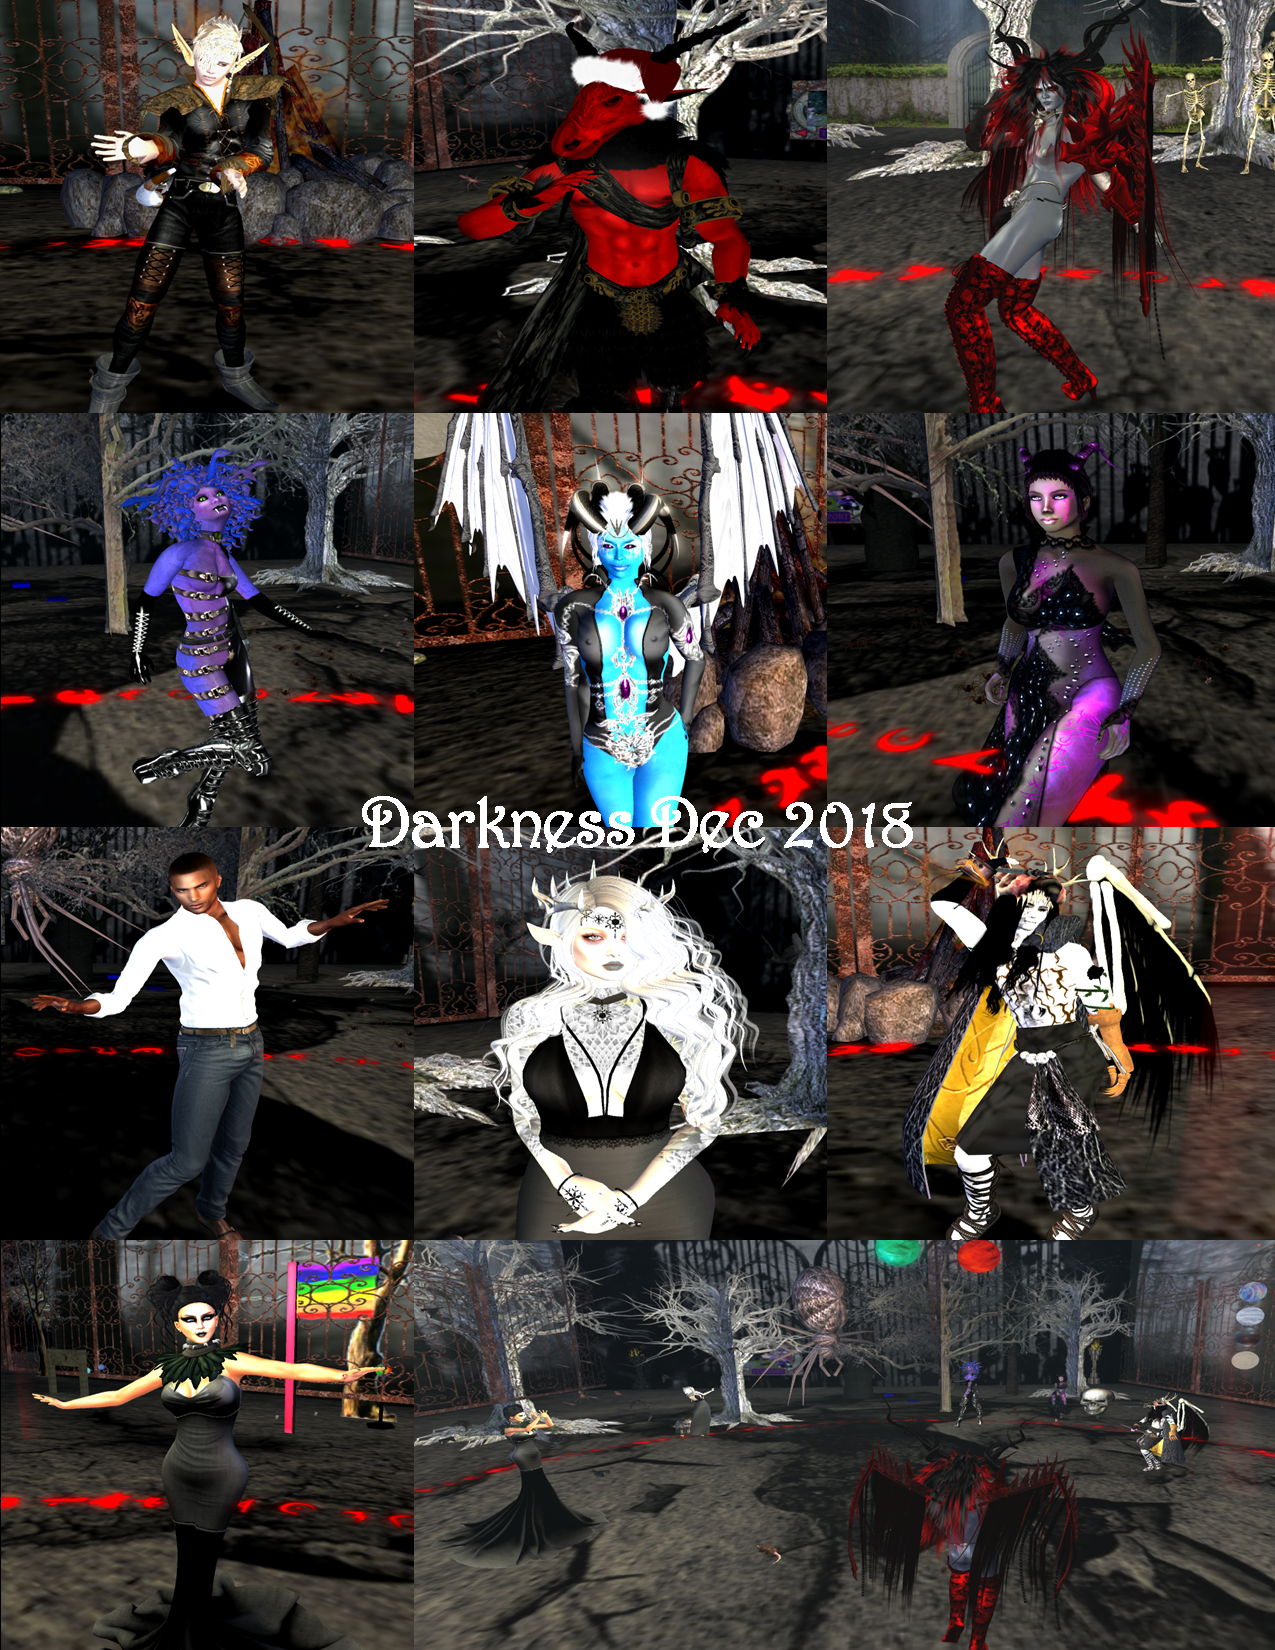 DARKNESS PARTY COLLAGE DEC 2018